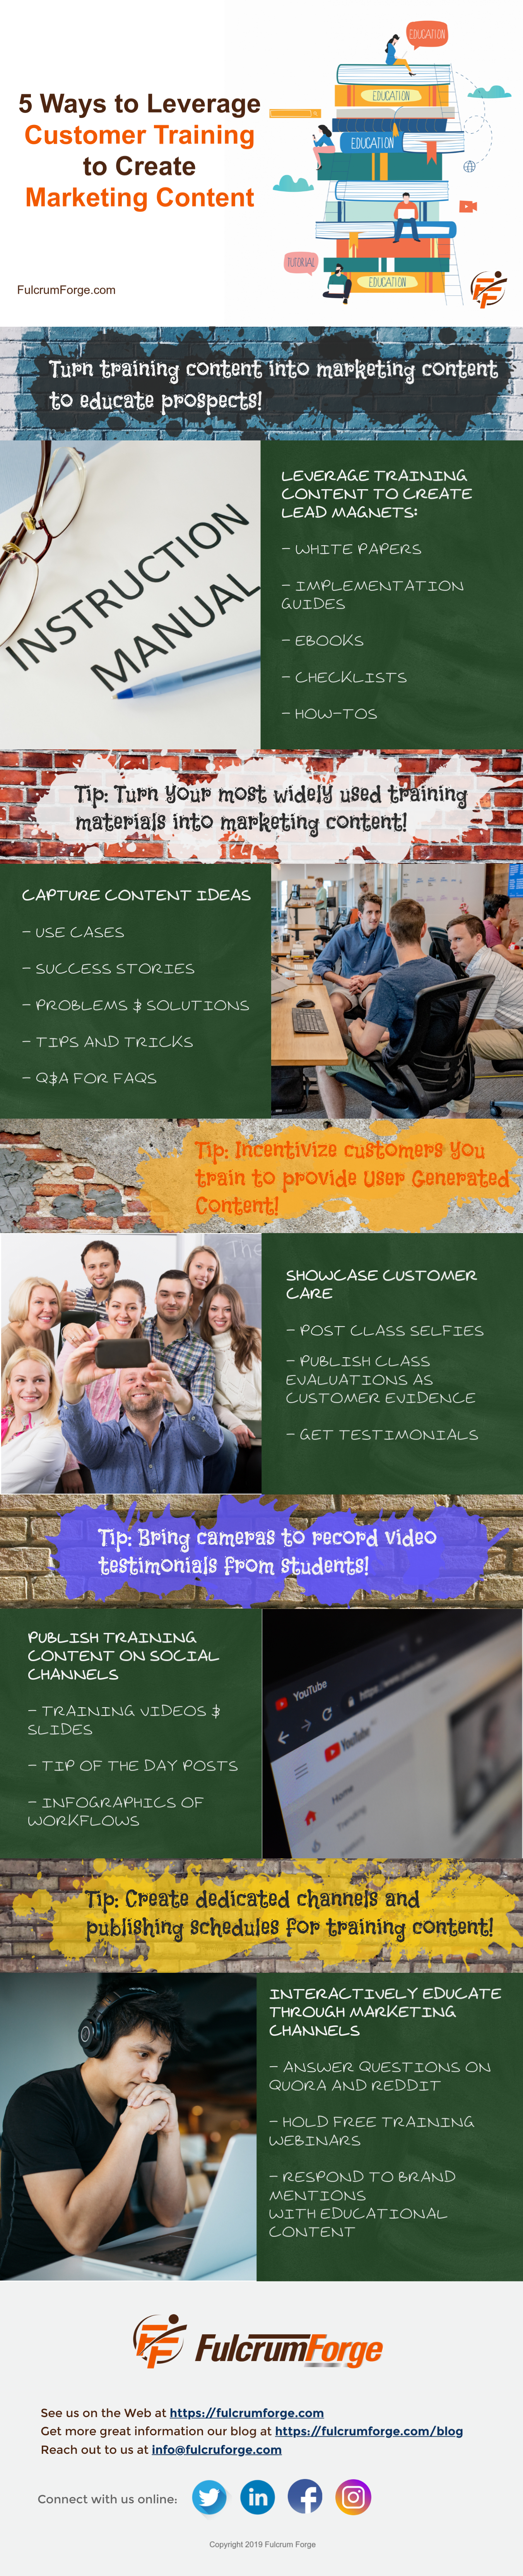 5-Ways-to-Create-Marketing-Content-from-Customer-Training (1).png